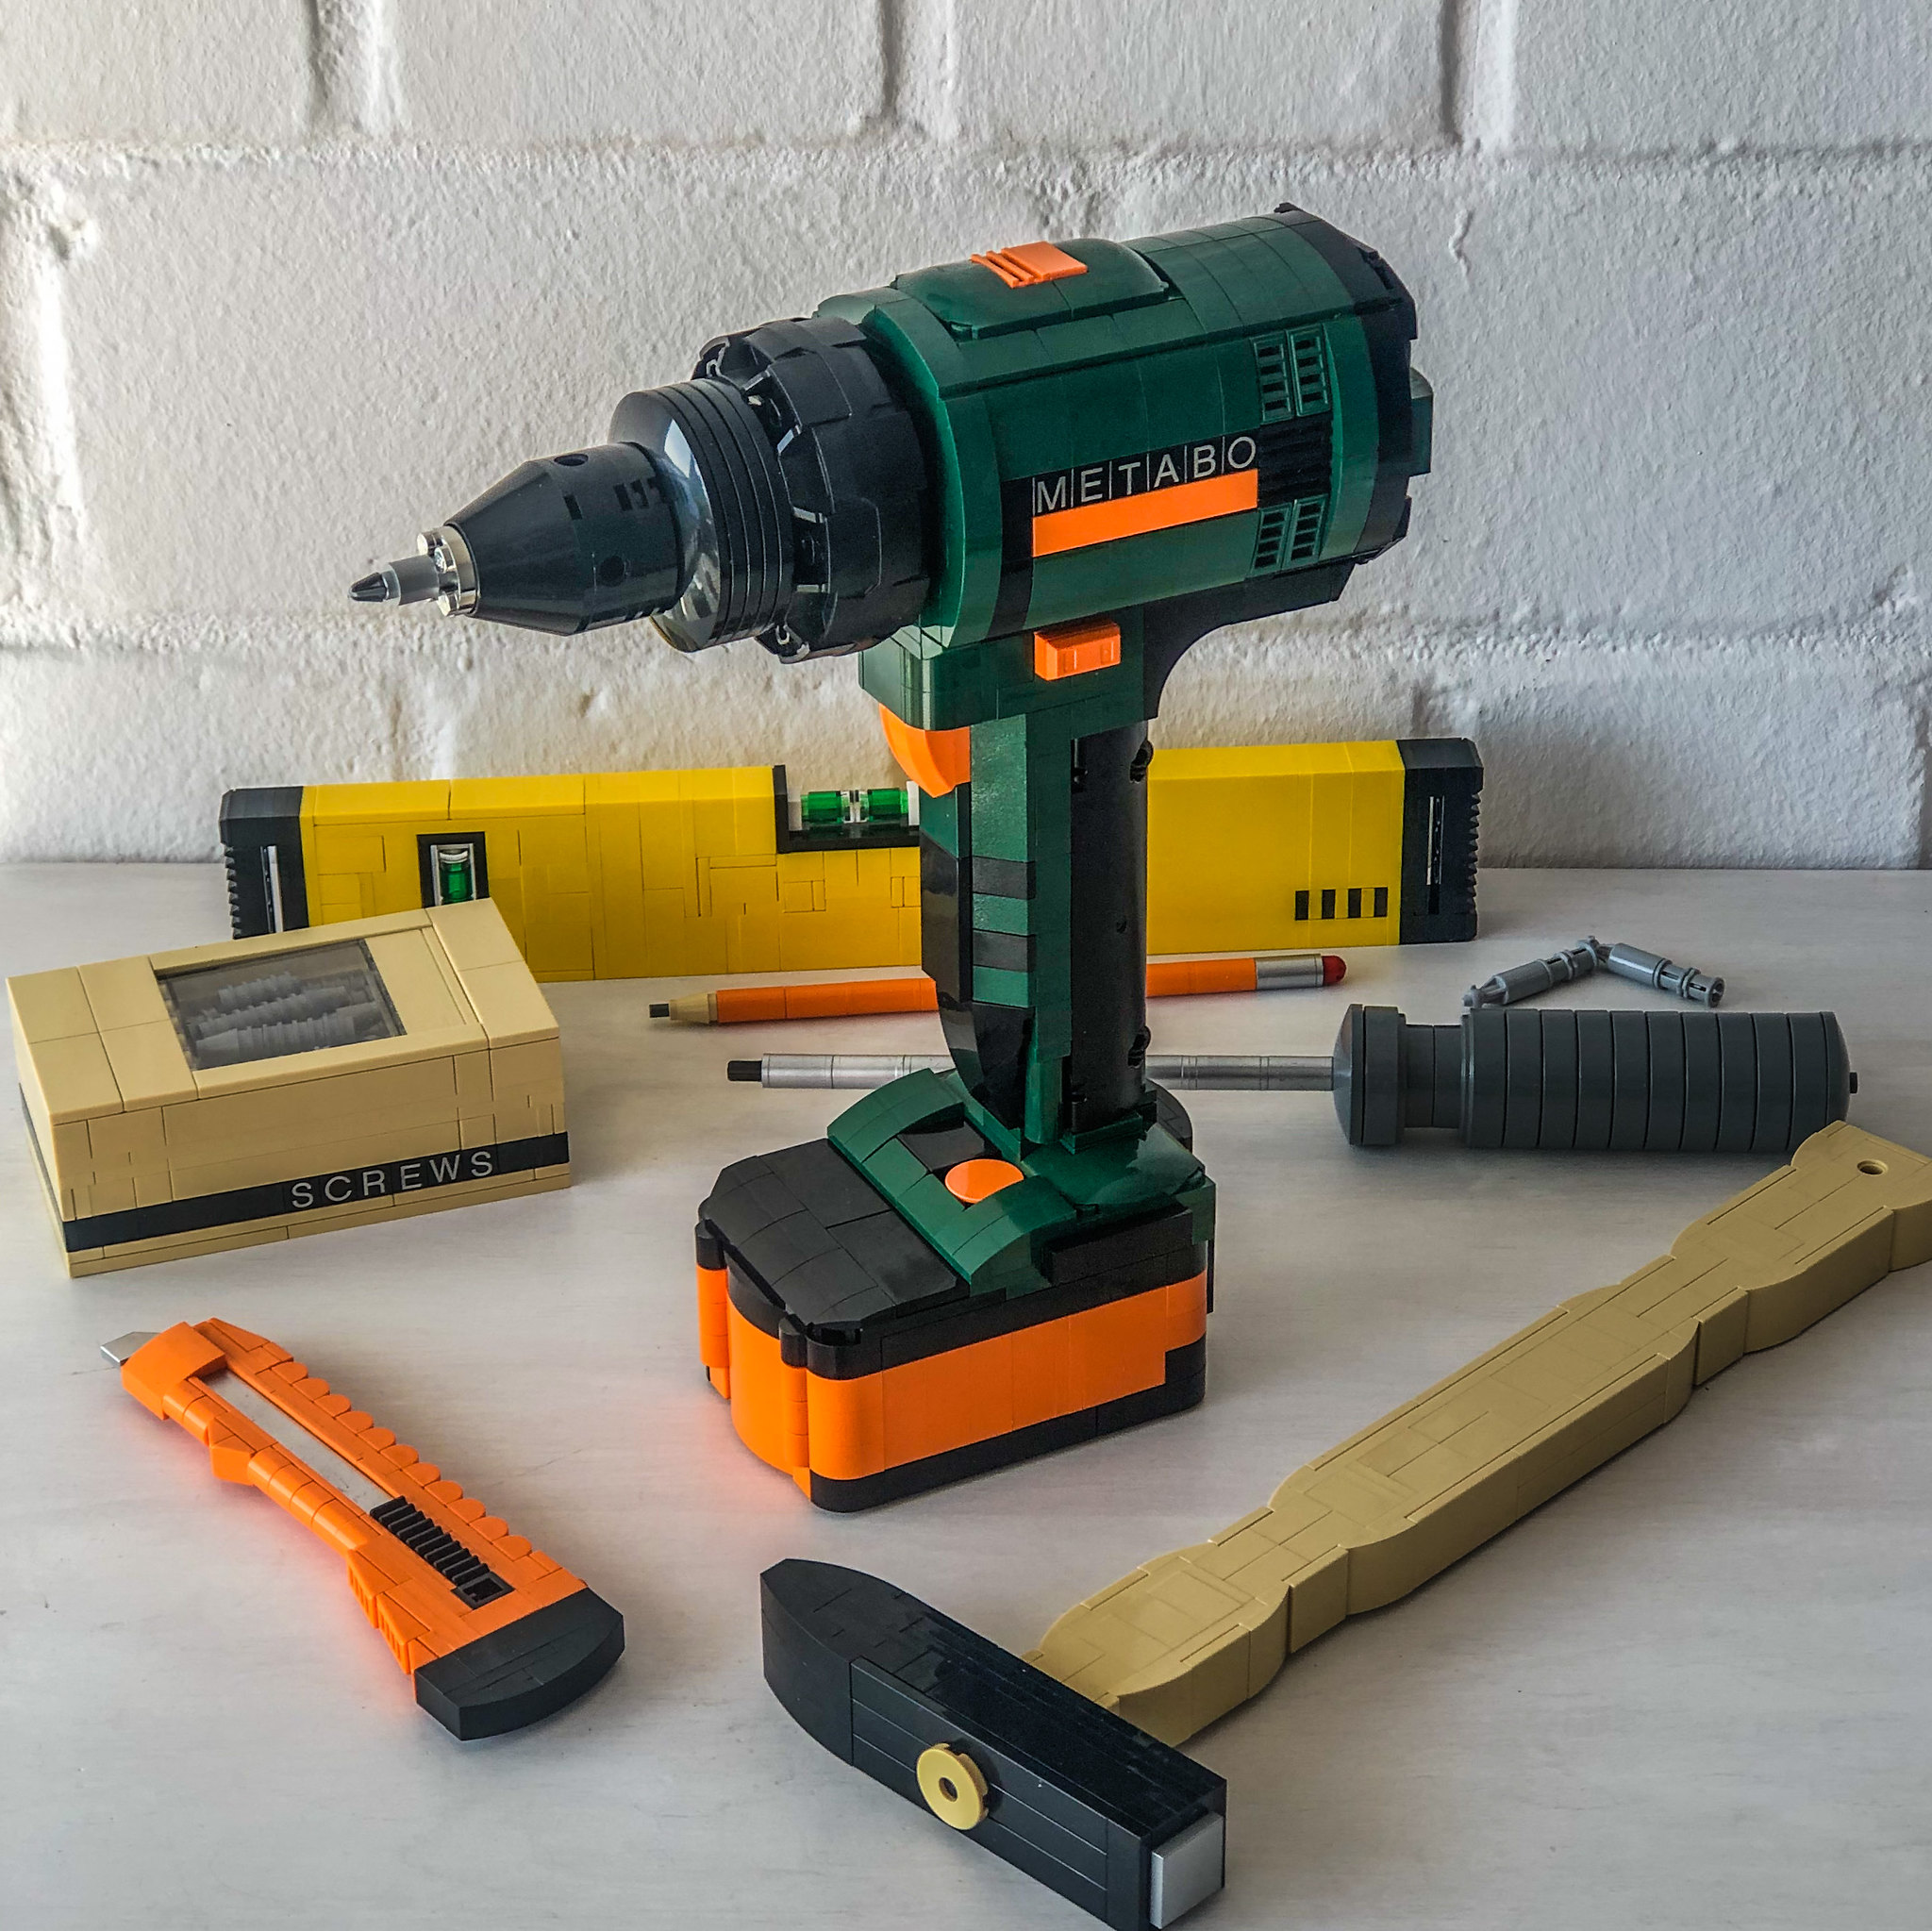 LEGO Metabo electric drill